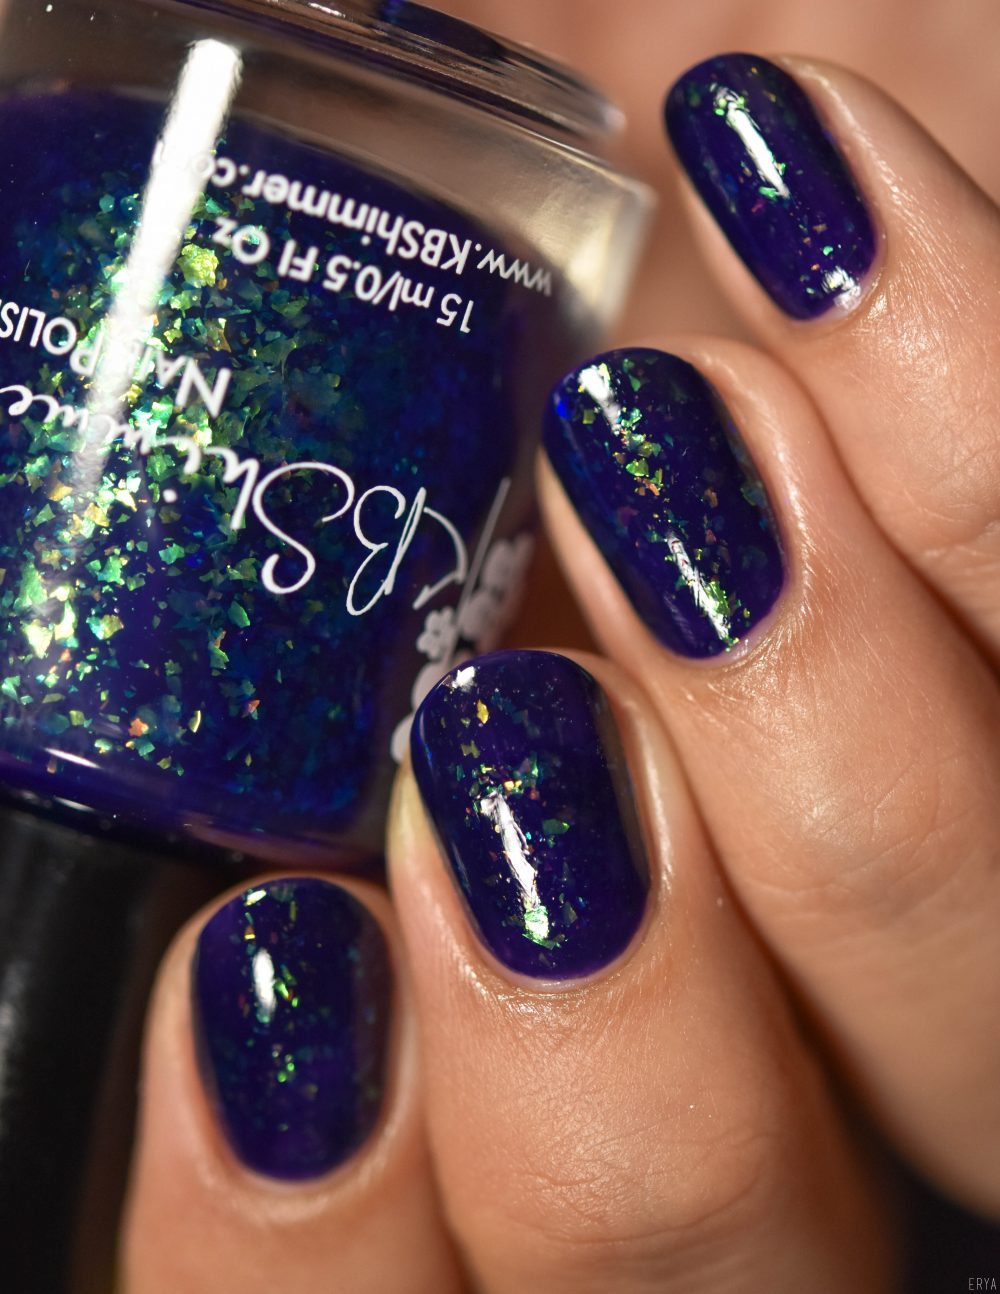 KBShimmer-Ready_For_This_Jelly-1